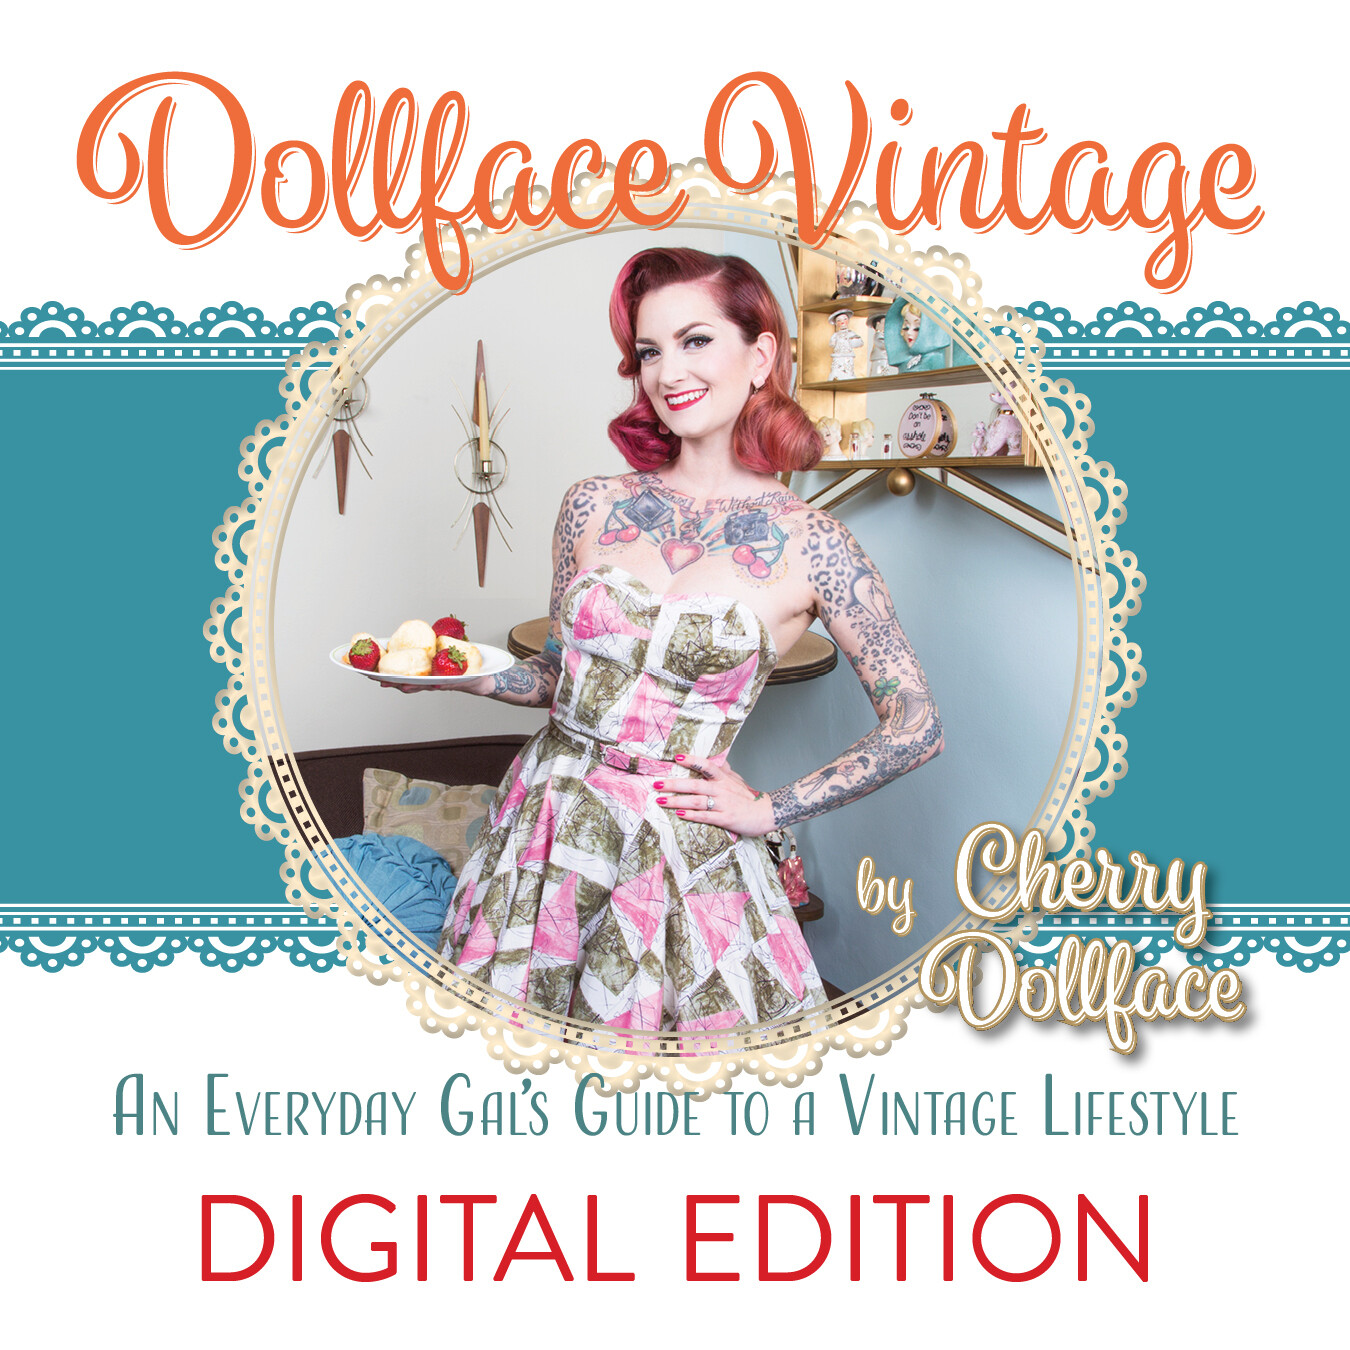 Dollface Vintage DIGITAL EDITION (for iOS/Apple Books)